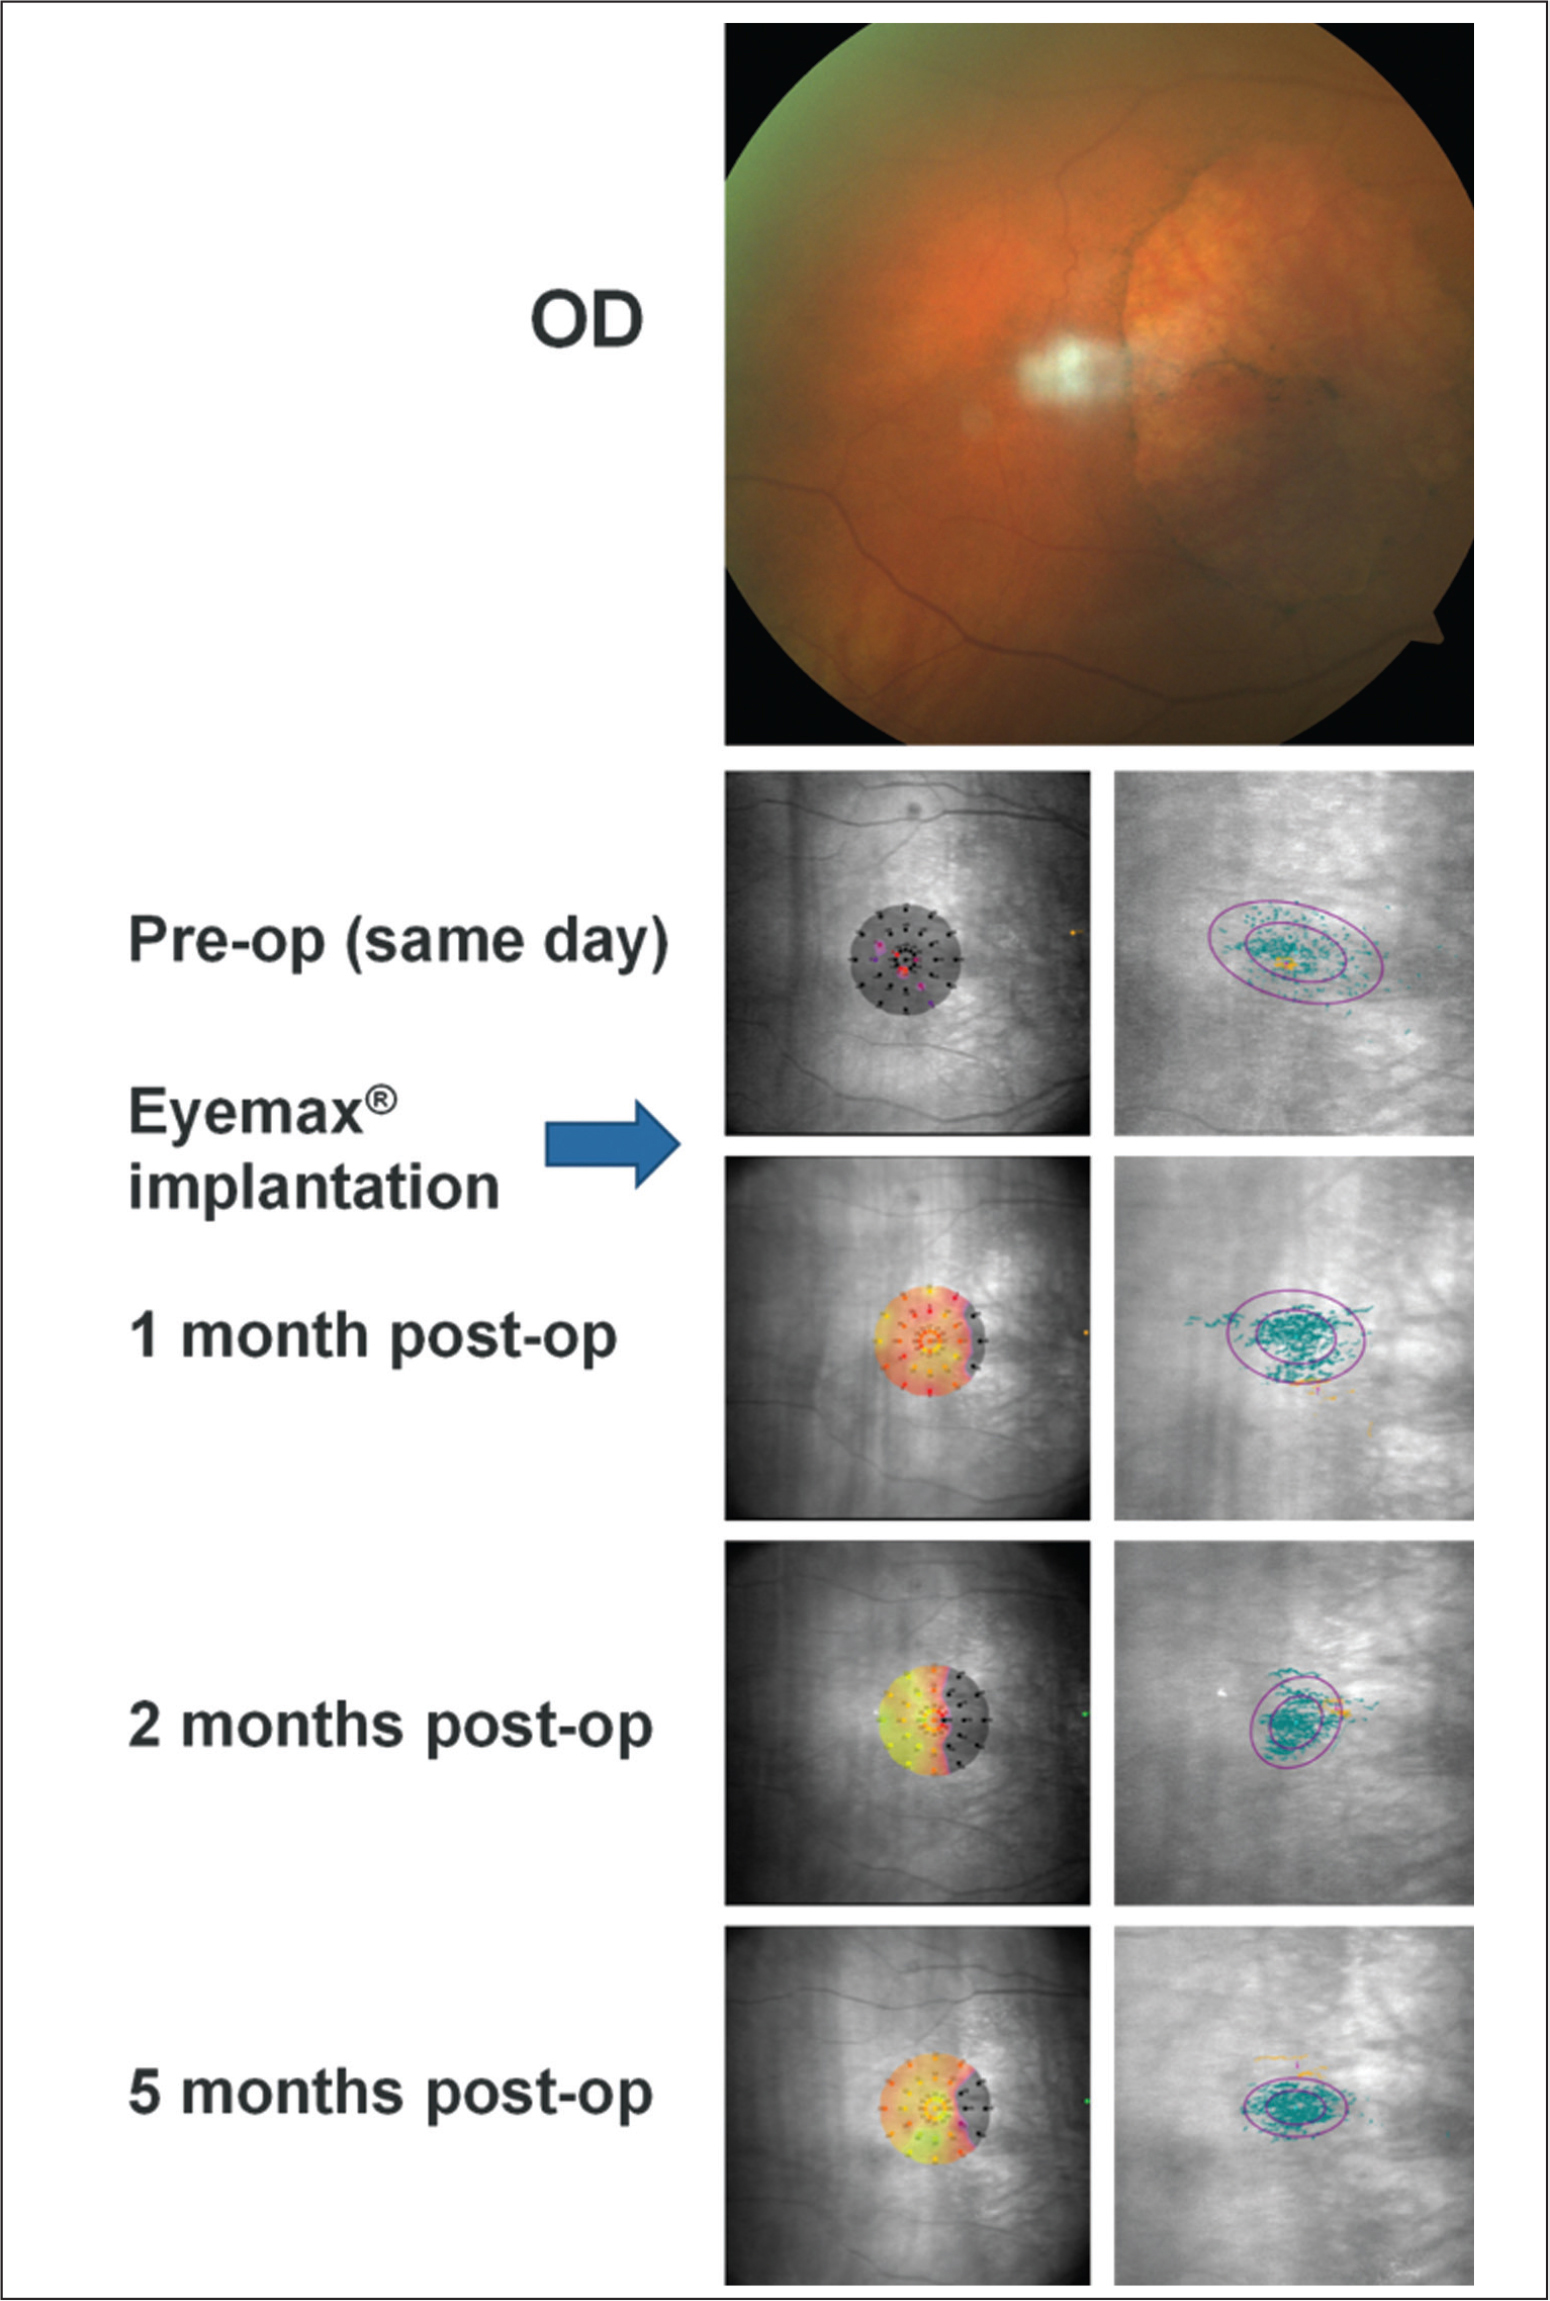 Preoperative color fundus photograph and microperimetric images obtained at baseline and 1, 2, and 3 months after implantation of the Eyemax mono intraocular lens (IOL) (LEH Pharma, London, United Kingdom) (eye 1). Color fundus photograph of the right eye in an 86-year-old woman (top panel) confirming a large area of geographic atrophy. Left panels show baseline and post-implantation interpolated sensitivity maps demonstrating the sensitivity at each point of the retina using information from nearby stimuli. Right panels show fixation points (blue dots; orange fixation dots represent points used in the first 10 seconds of the test) with bivariate contour ellipse area analysis; the smaller ellipse contains 63% of all fixation points and the larger ellipse contains 95% of all fixation points. Threshold sensitivity at baseline is observed to be zero with no stimuli seen (black dots) and fixation points are spread over a wide area that straddles the temporal border of geographic atrophy. Threshold sensitivities were observed to increase progressively over a 5-month period postoperatively (average threshold sensitivity increased from 0 dB at baseline to 16.6 dB at 5 months postoperatively); these changes are associated with a progressively more tightly focused cluster of fixation points centered outside of the area of geographic atrophy (mean percentage of fixation points within a 4° circle increased from 64% at baseline to 94% at 5 months). The preferred retinal locus is located temporal to the area of geographic atrophy in the patient's right eye and nasal to the area of geographic atrophy in the left eye (see Figure FB); this configuration is generally adopted to facilitate reading.